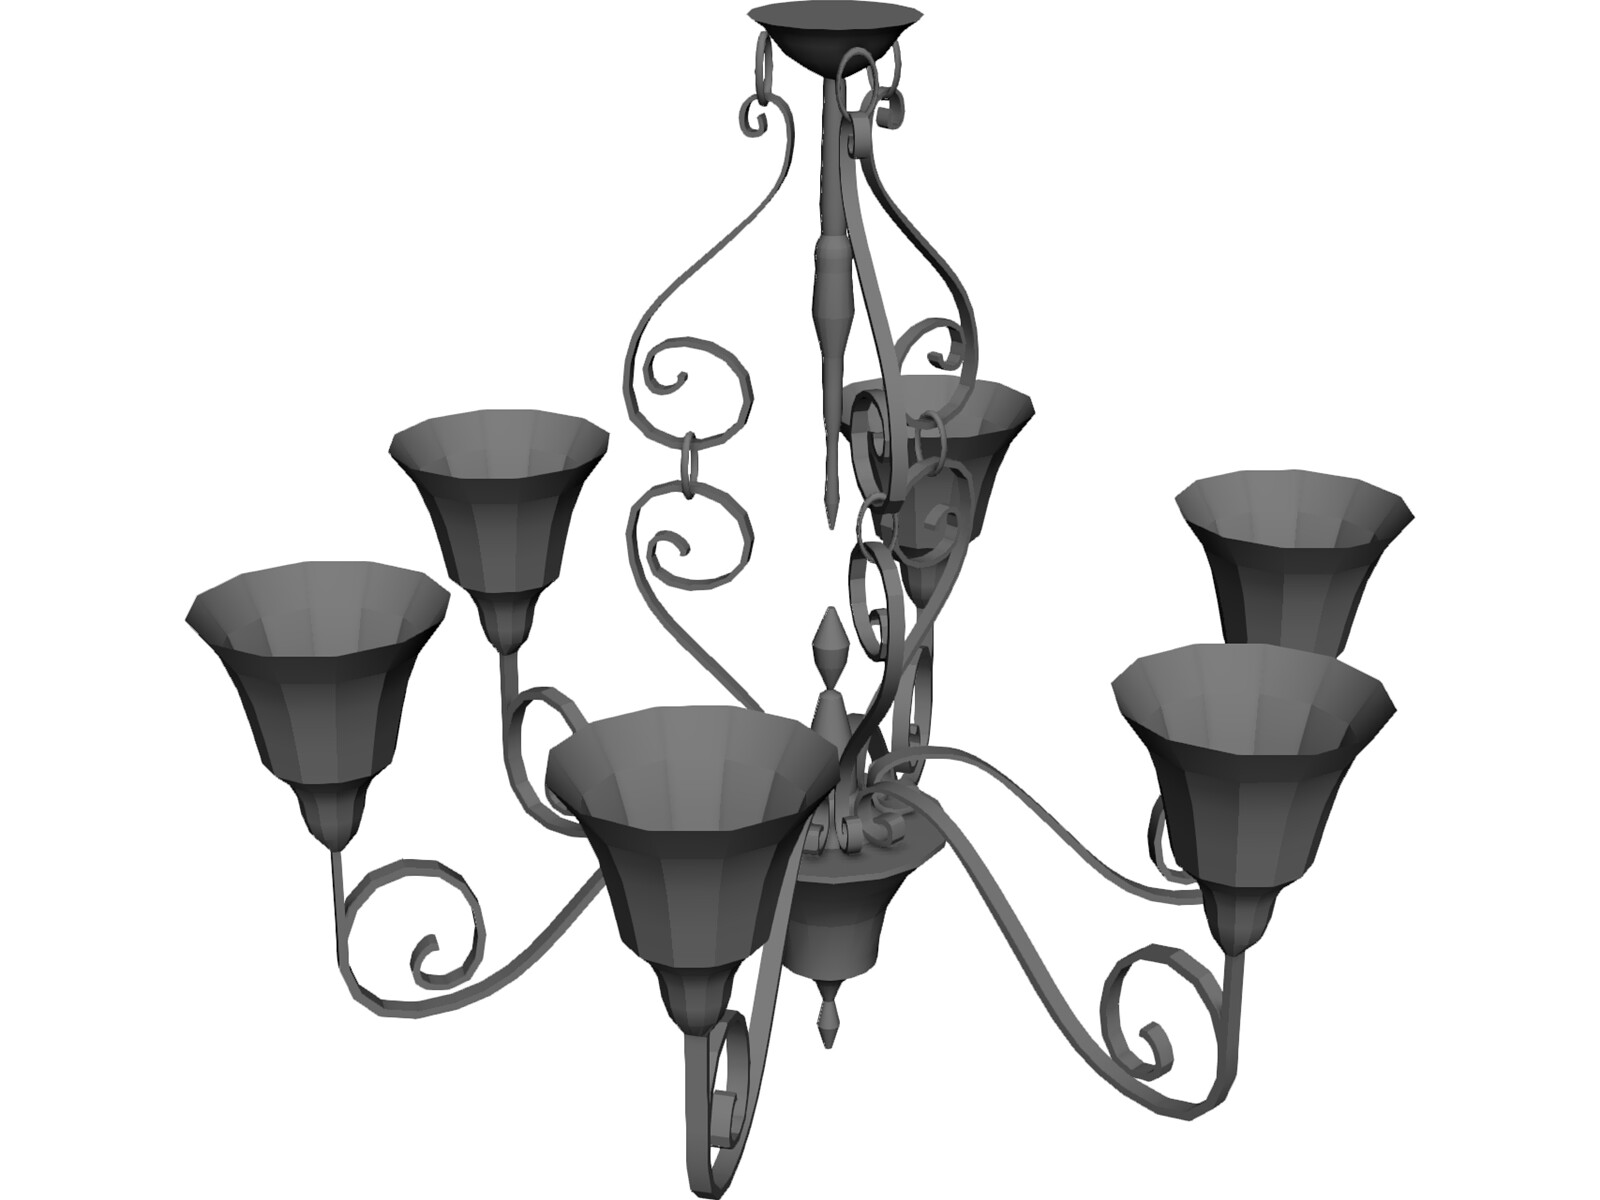 Chandelier 3D Model - 3D CAD Browser